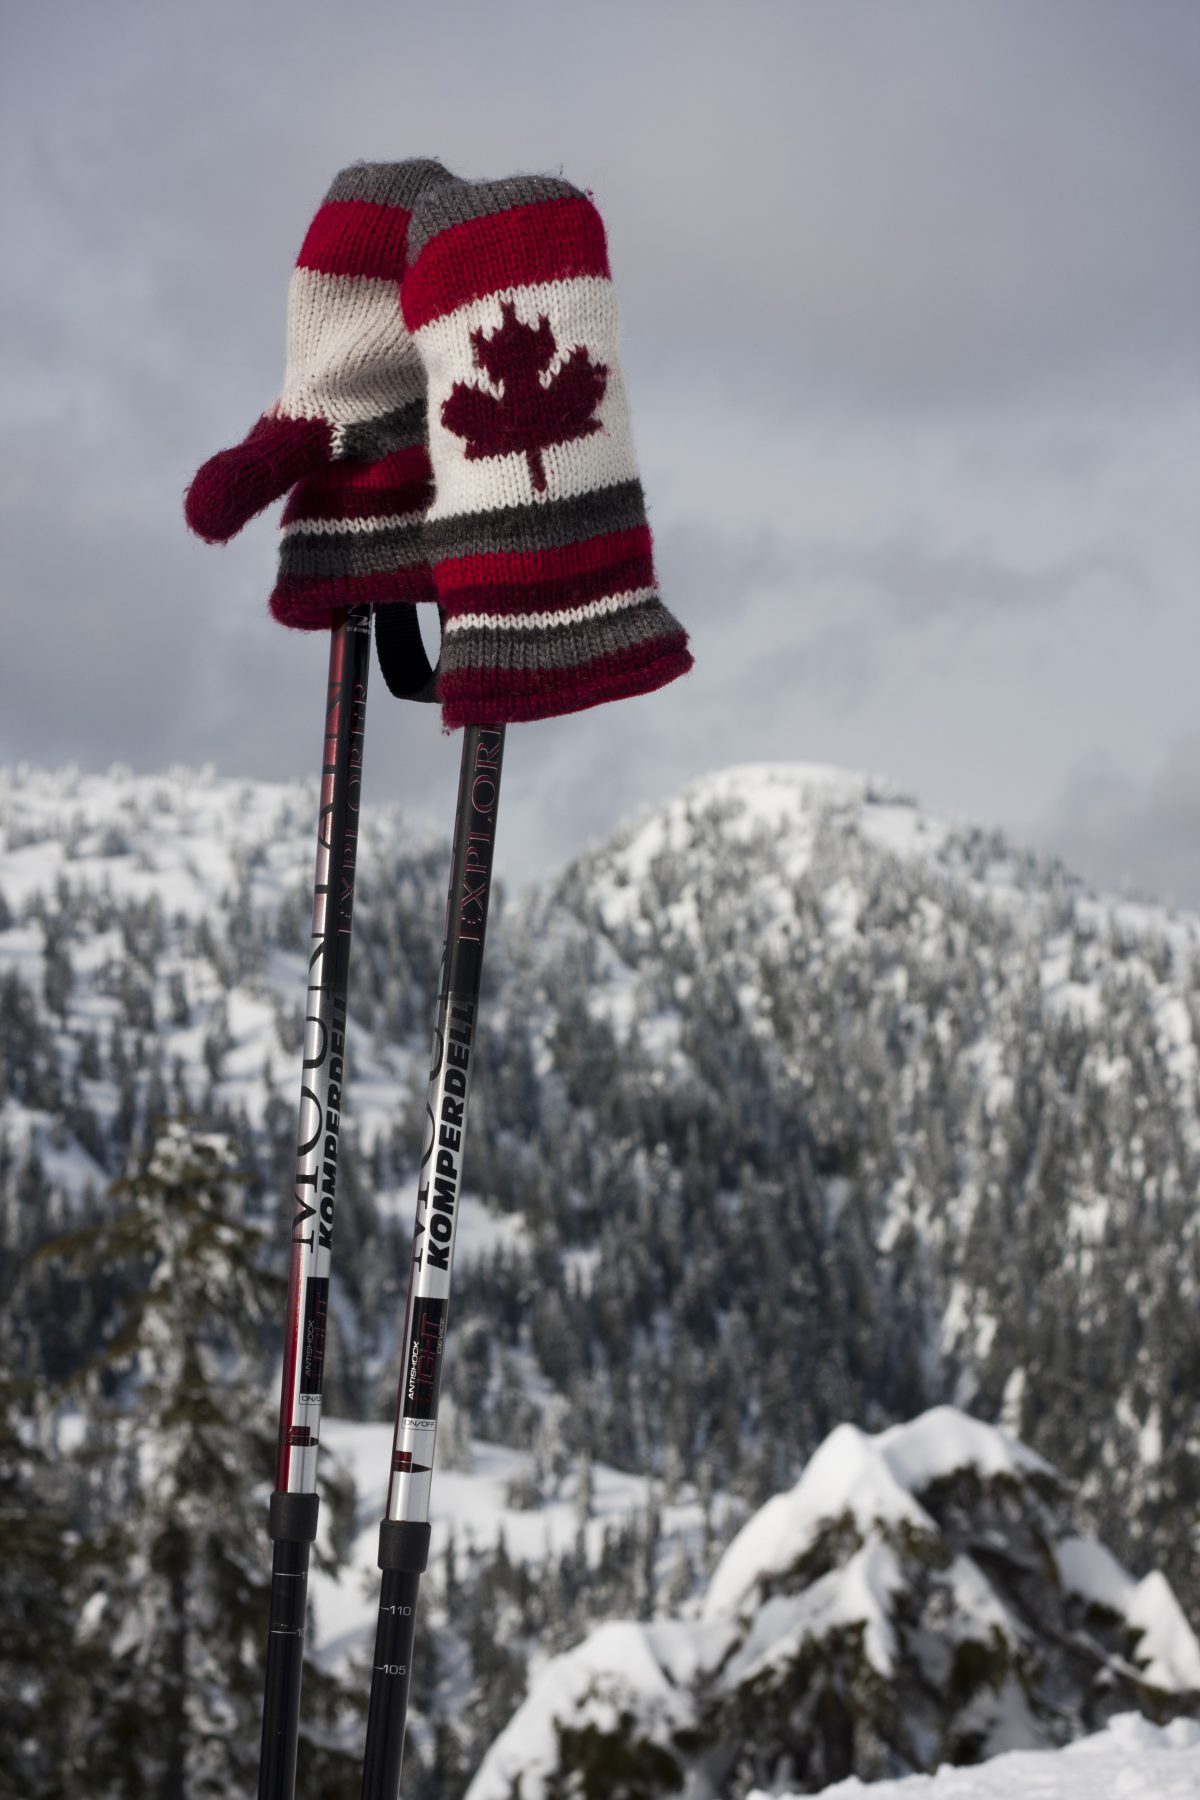 Red gloves - Snowshoeing at Cypress mountain, snow